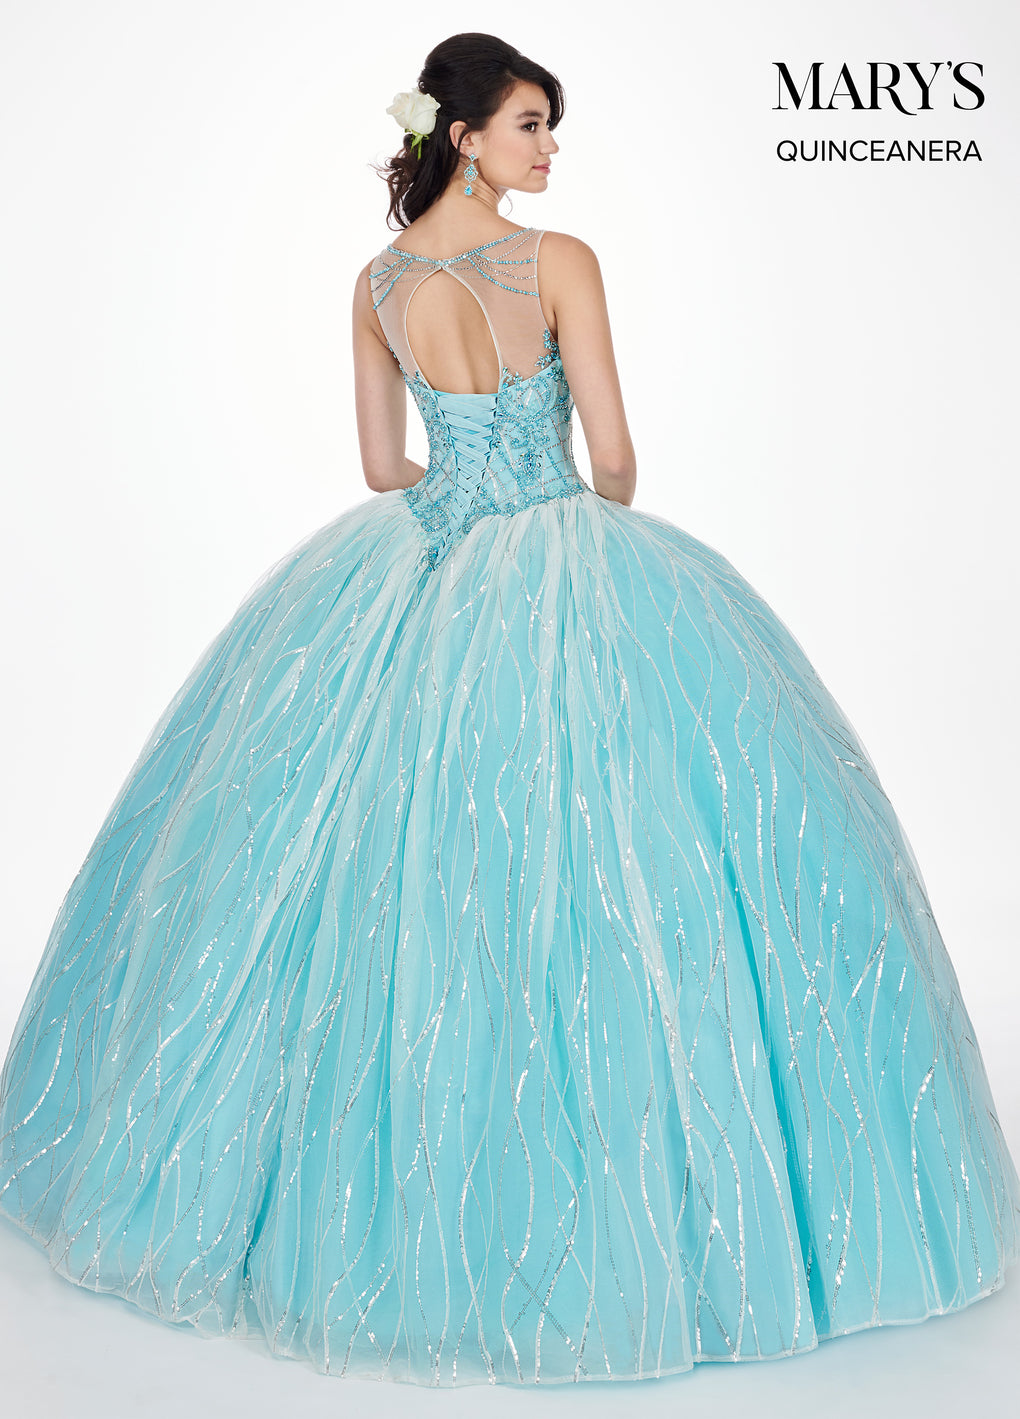 Marys Quinceanera Dresses in Ivory/Aqua or Ivory/Light Peach Color